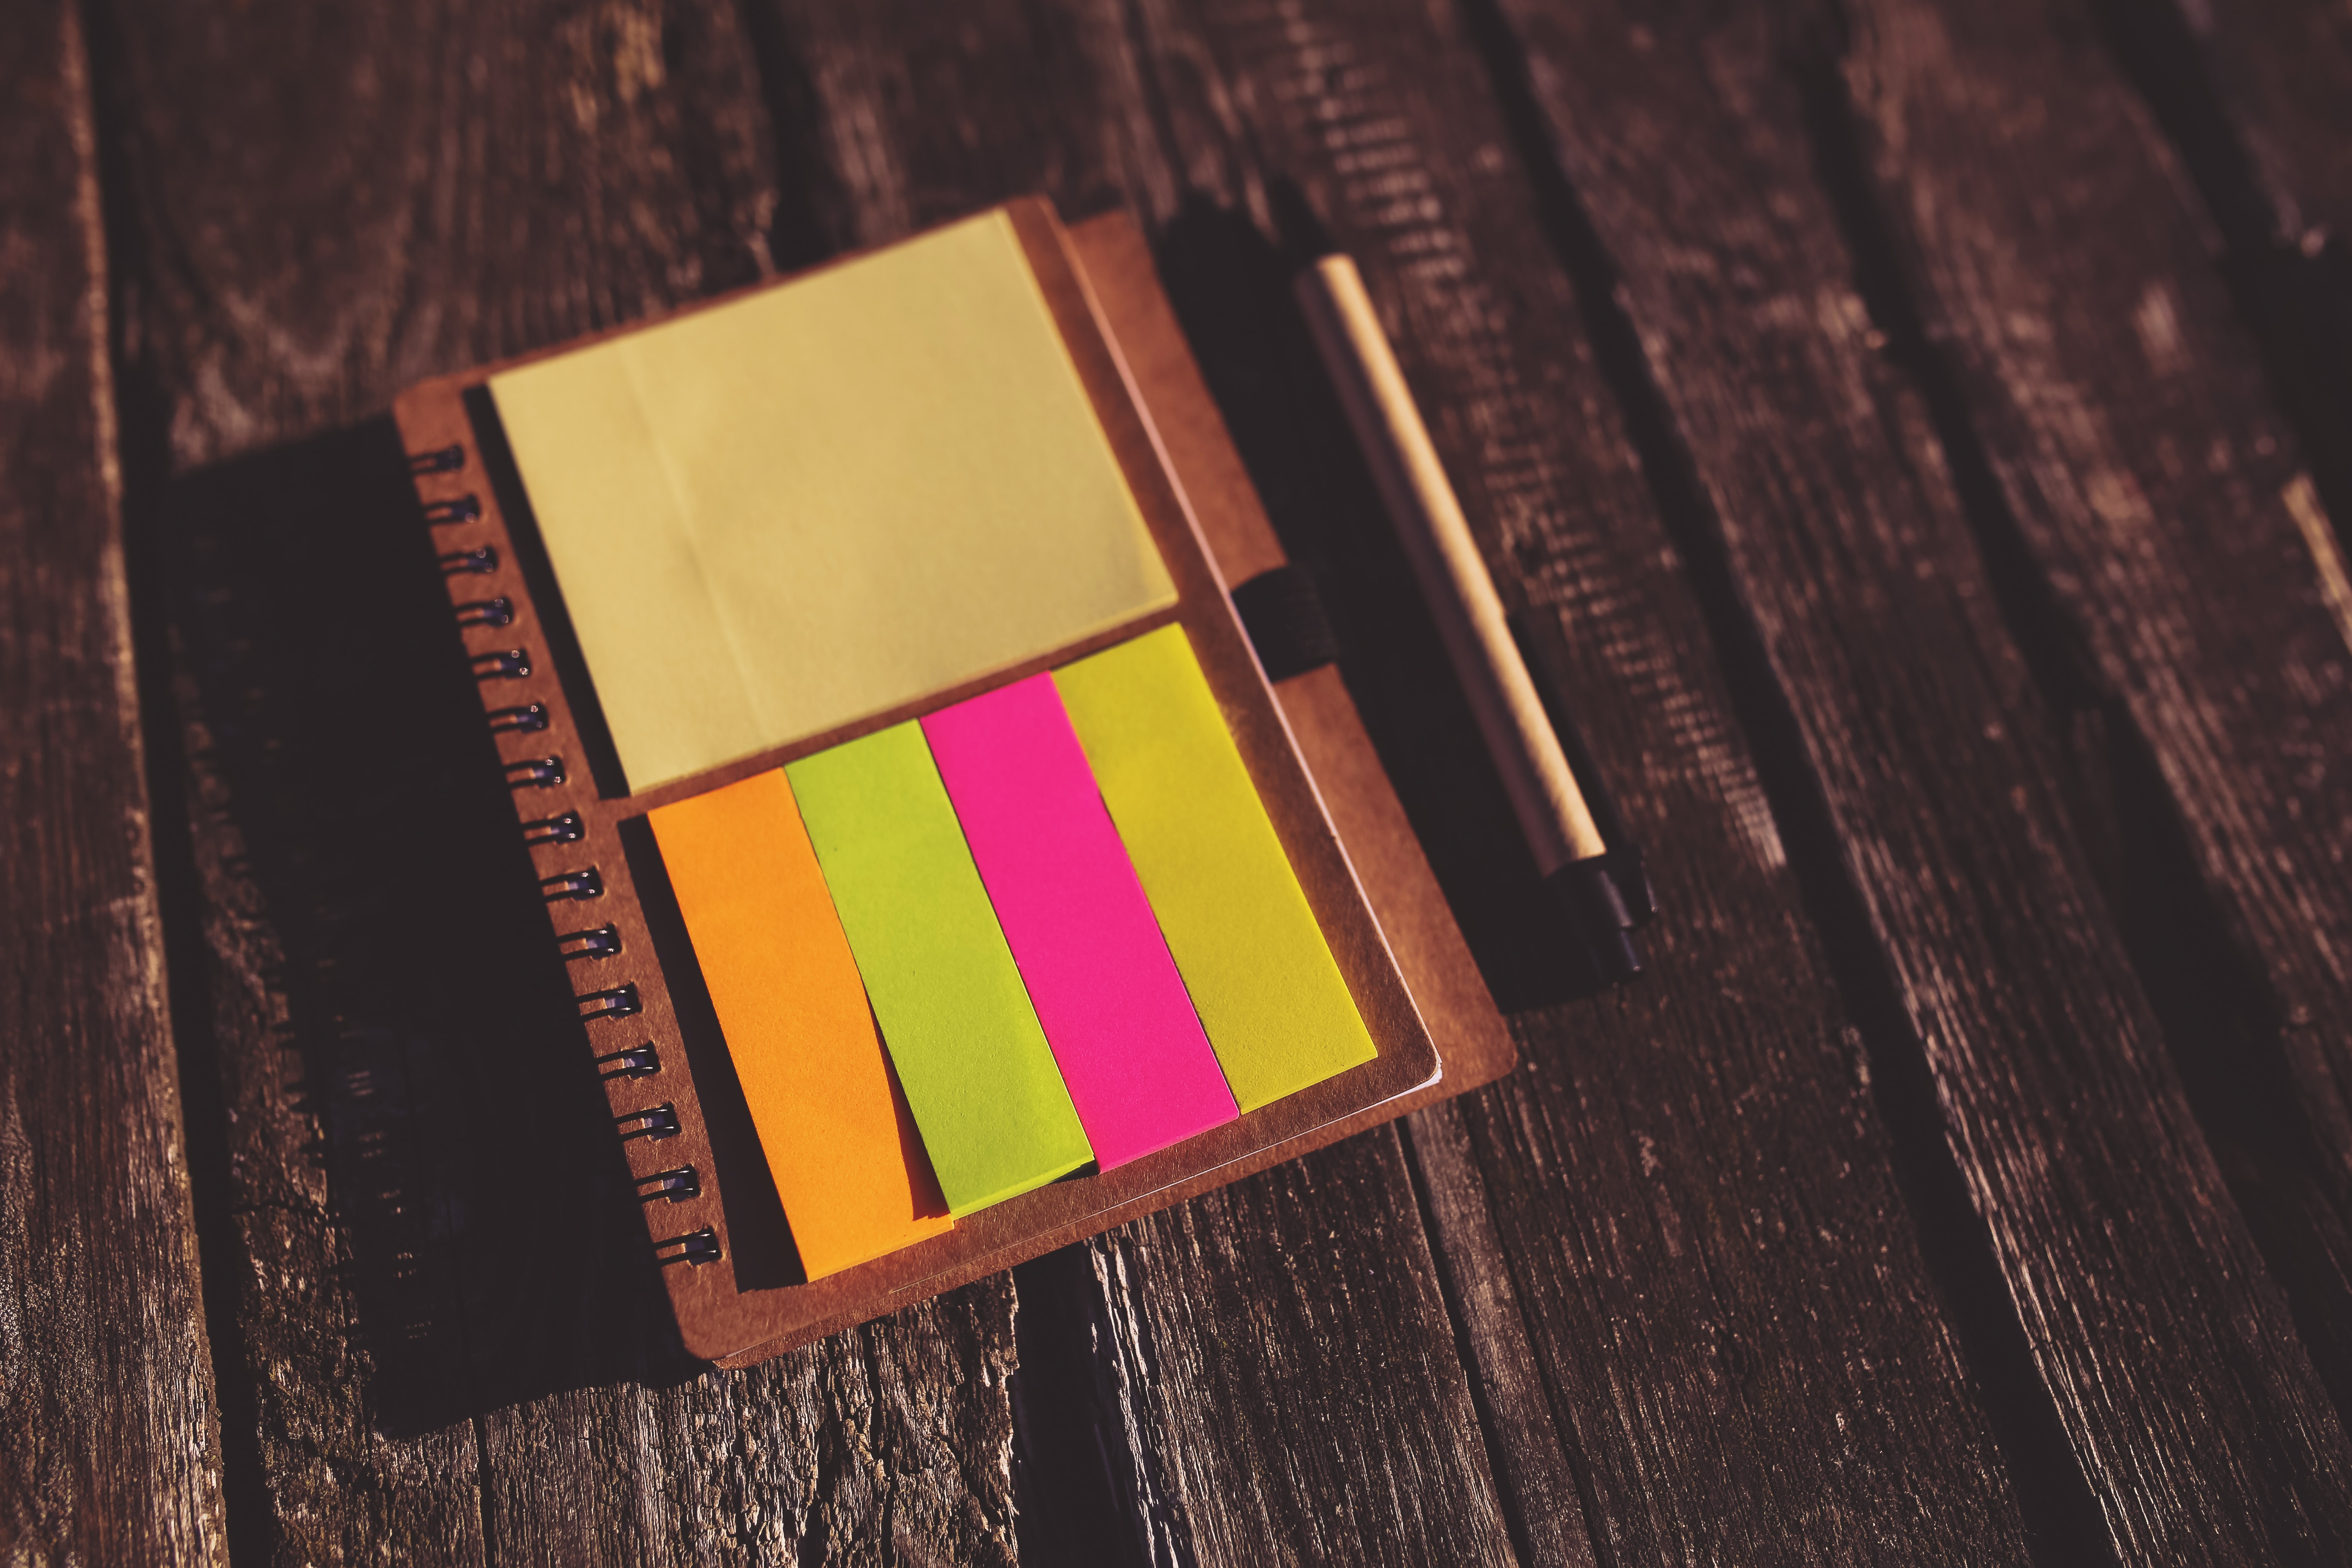 Reminder sticky notes, Blur, Paper, Wooden, Wood, HQ Photo